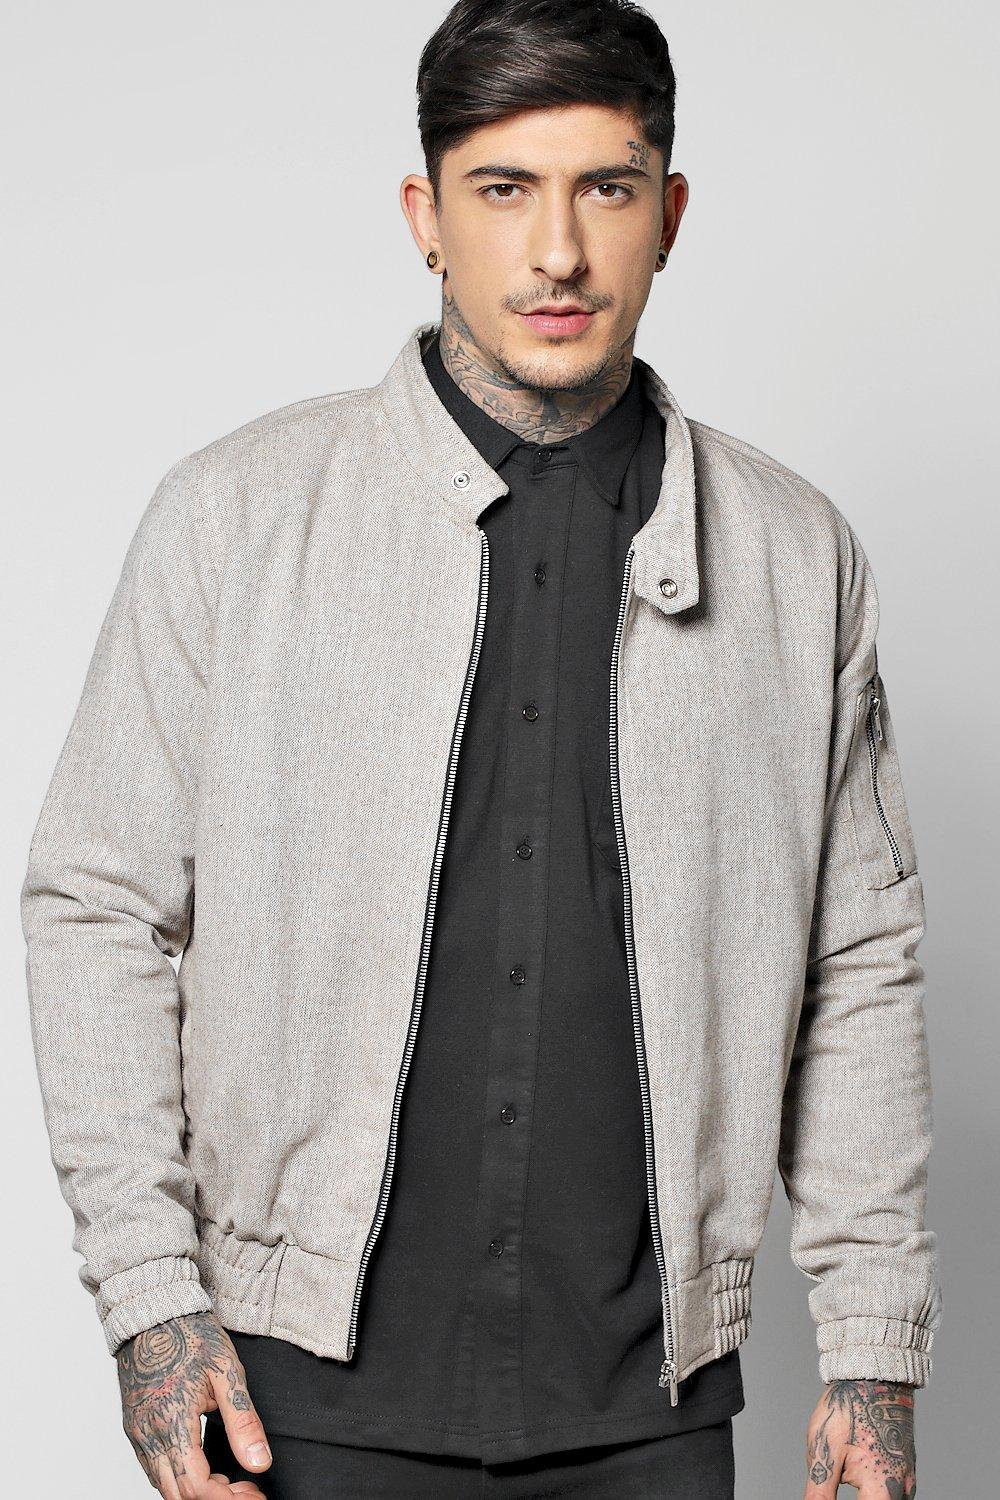 Textured Herrington Jacket